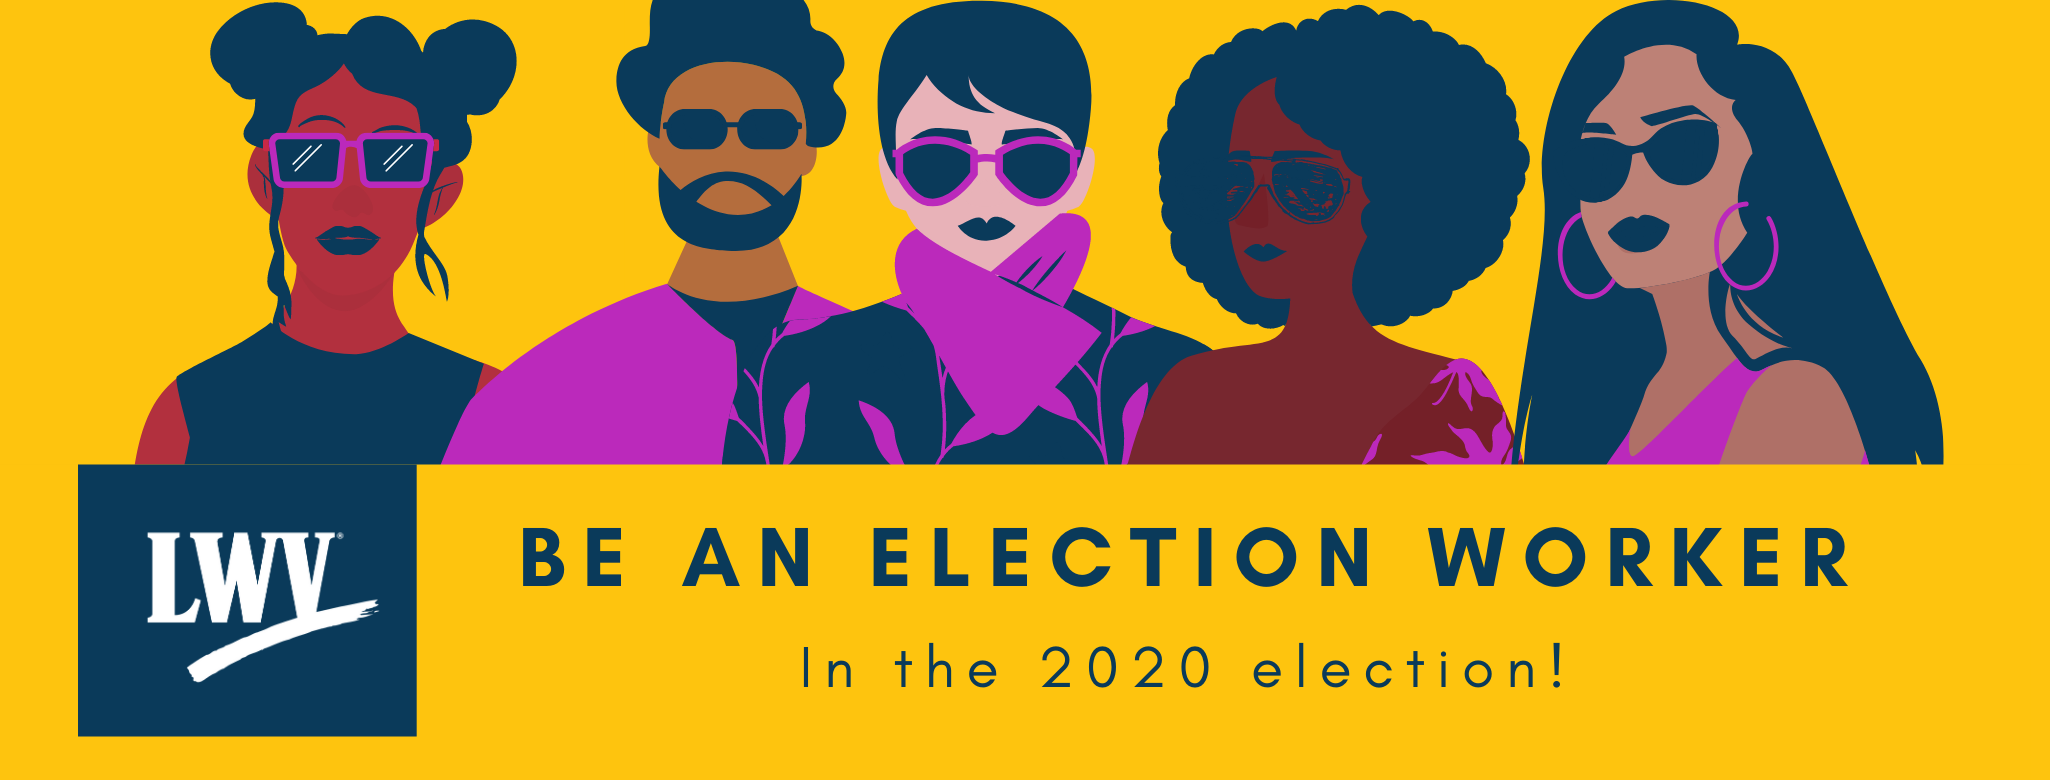 Be an Election worker men and women graphic